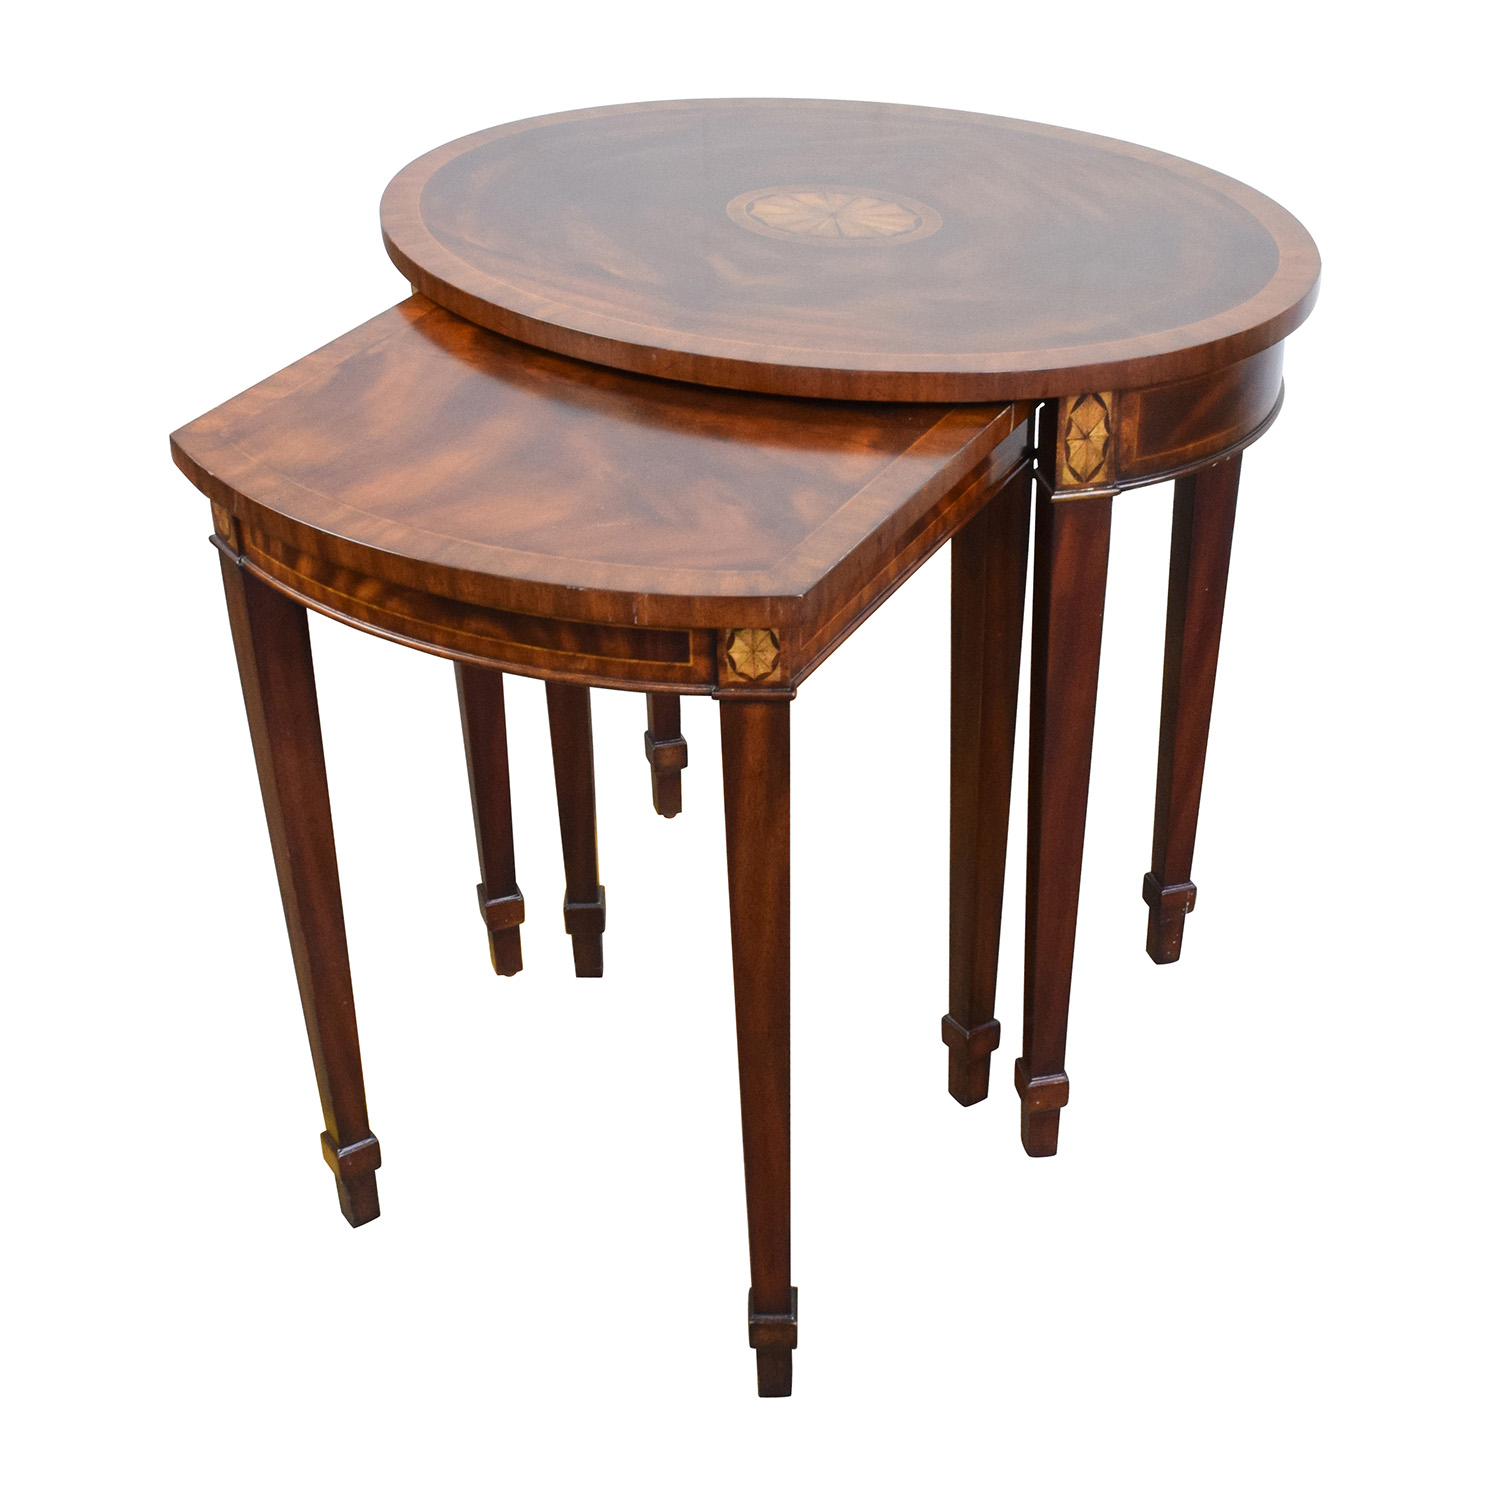 Off antique reproduction wood nesting side tables